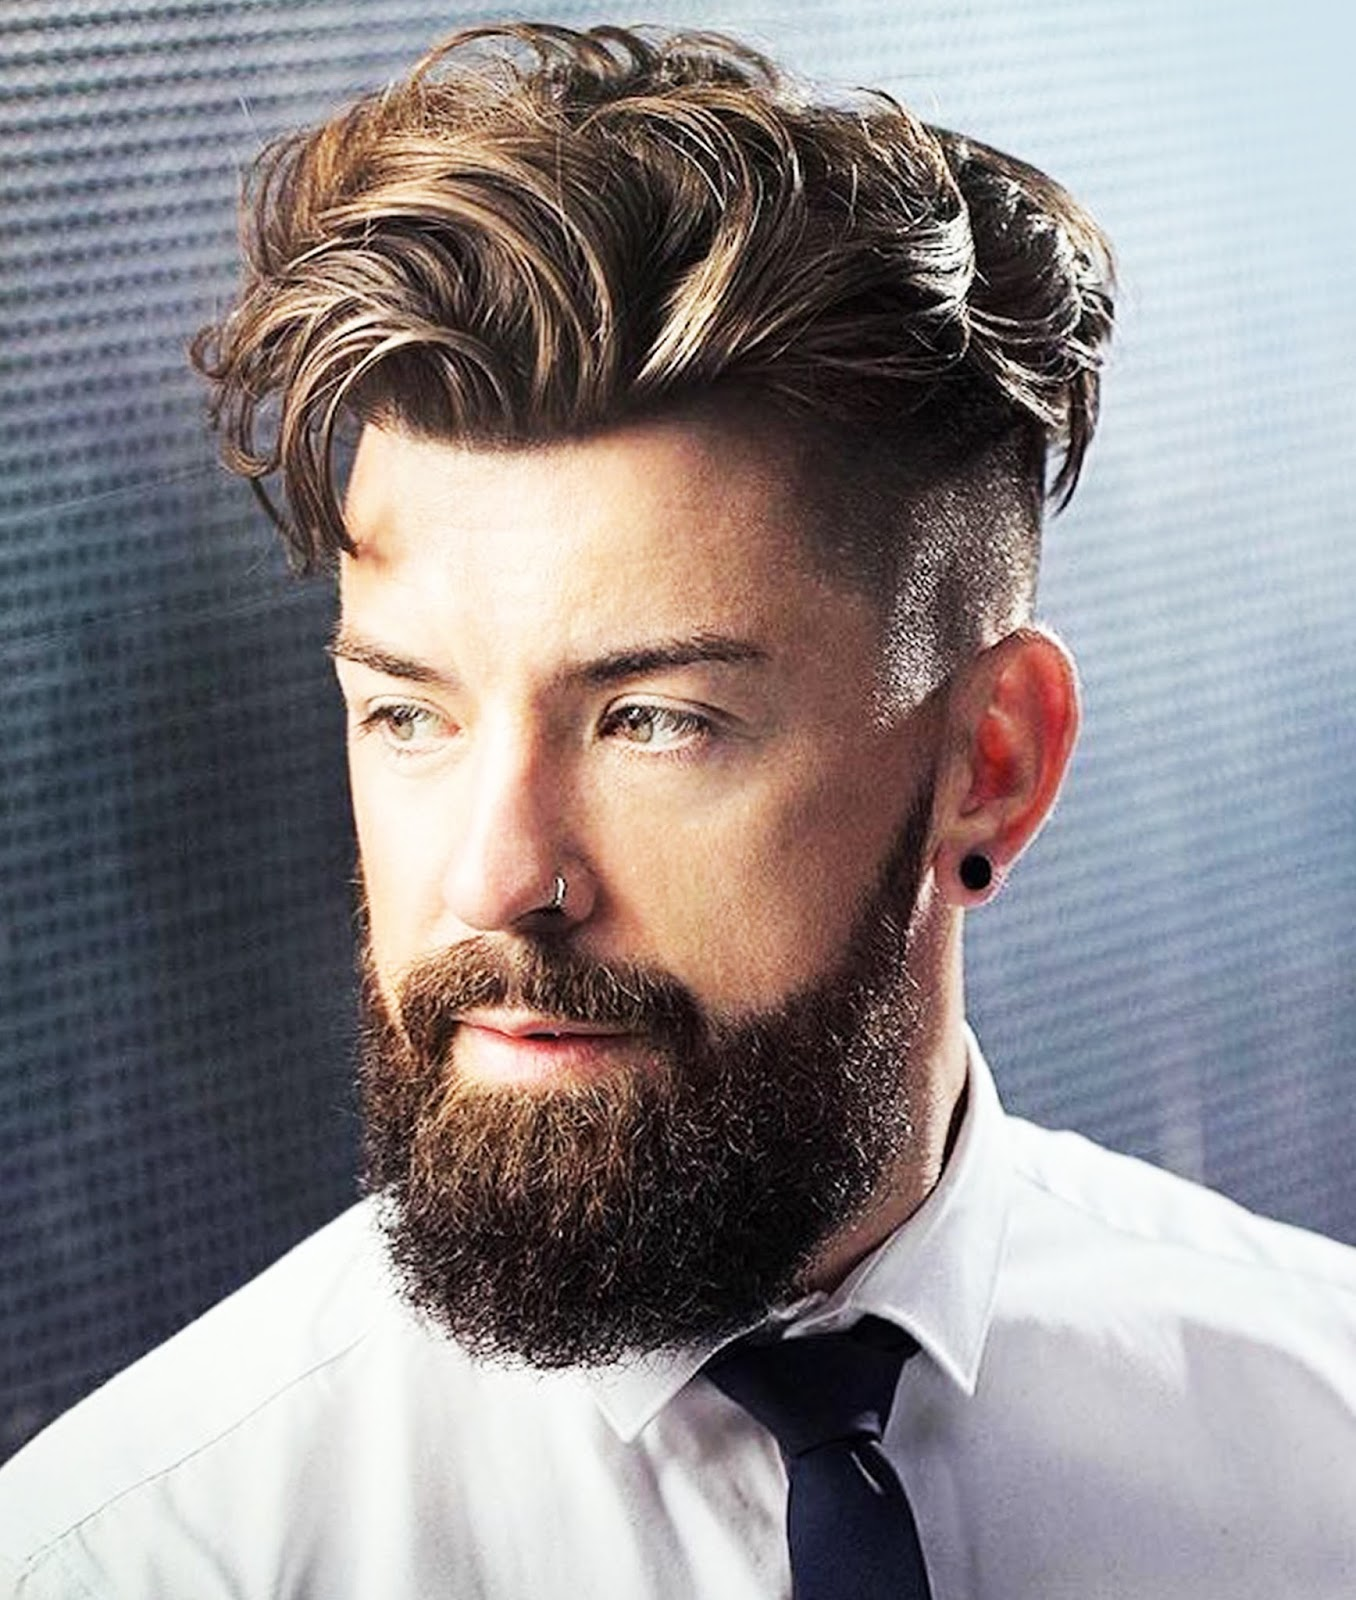 Elegant Curly Hairstyles For Men Hairstyle Ideas